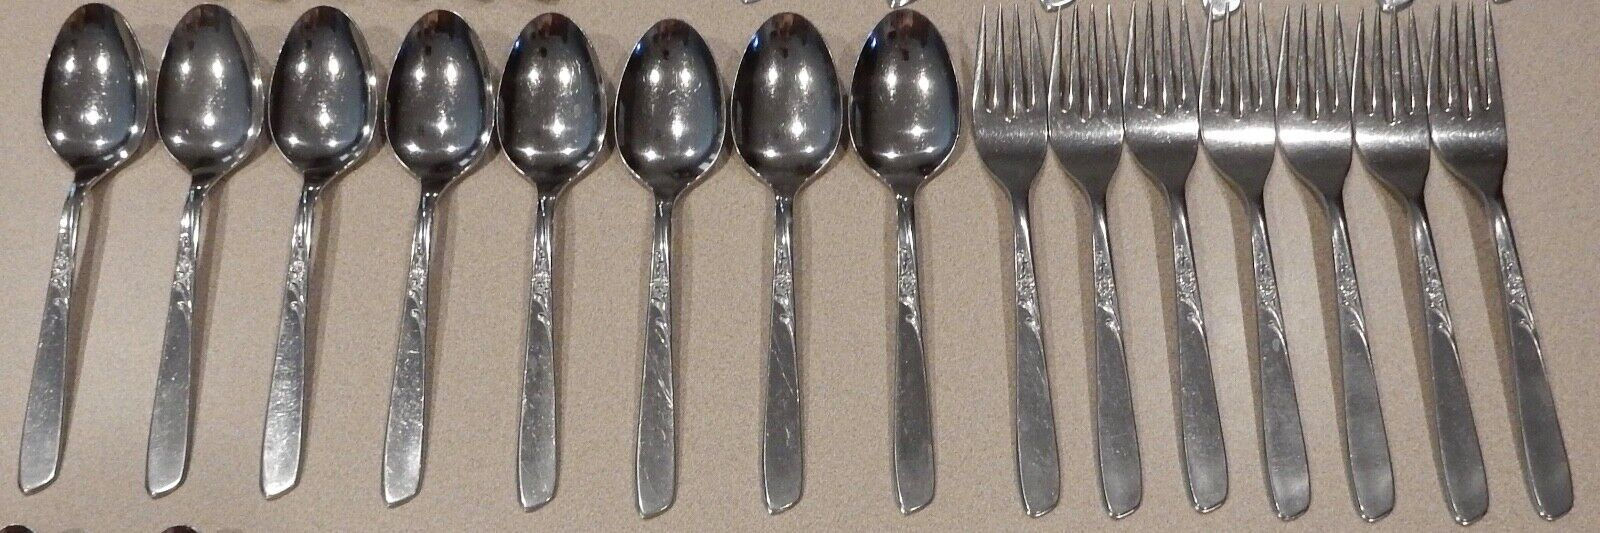 Vintage Oneida Oneida Oneida Stainless Lightweight Flatware 54 Pc. Lot 16e9ad